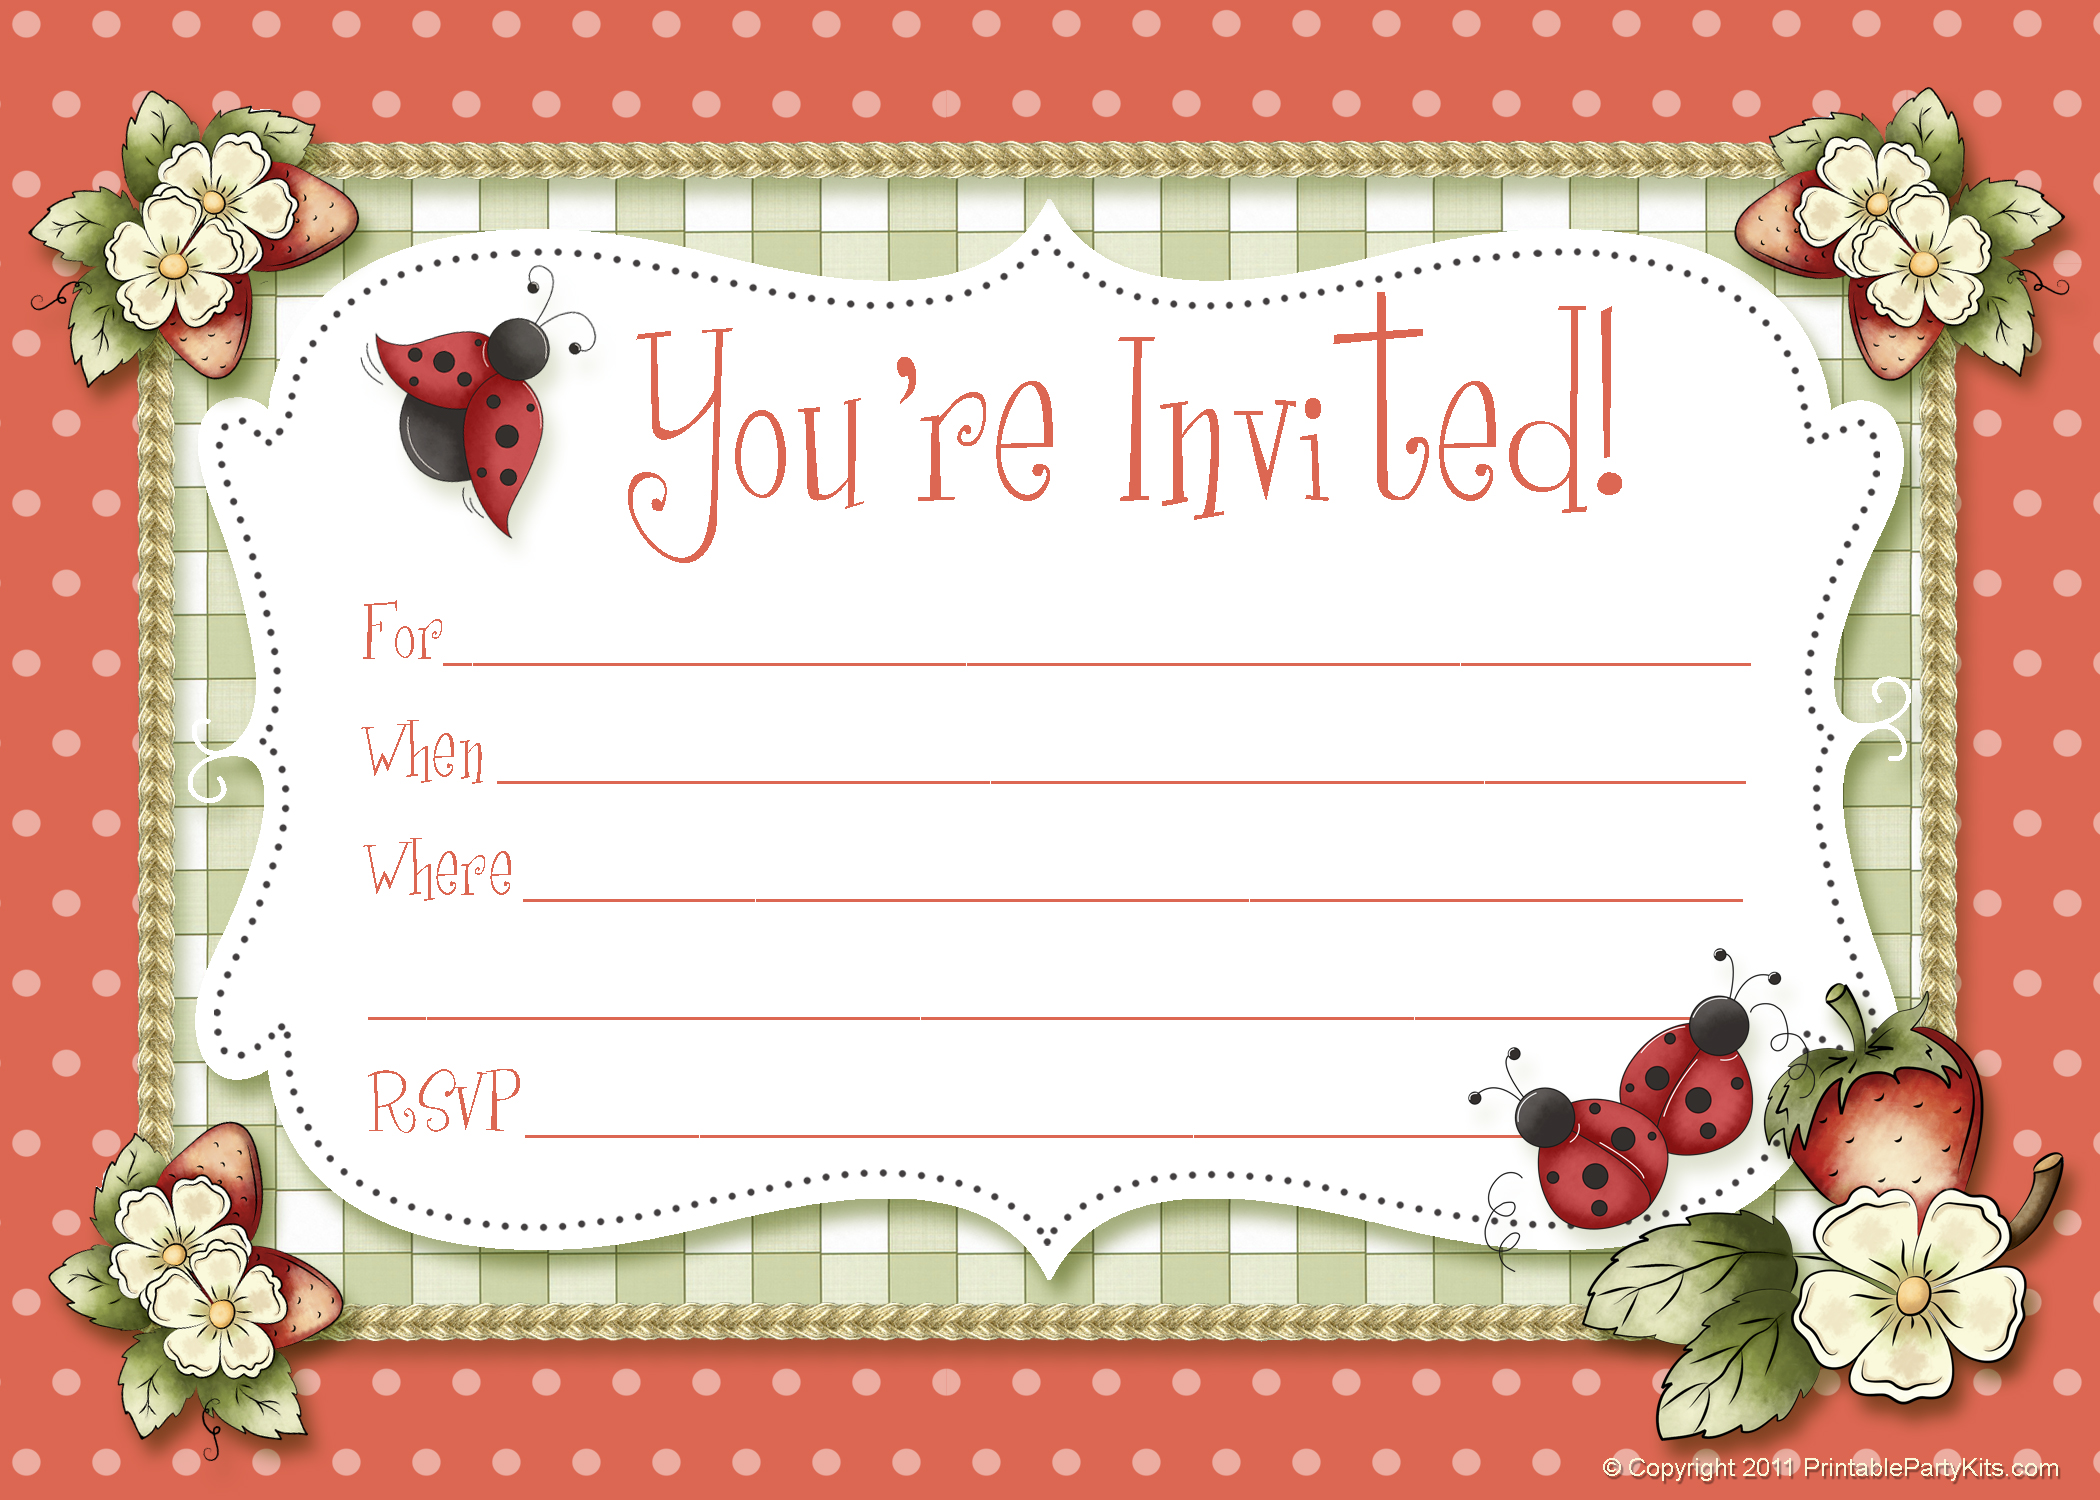 How to make party invites online create birthday party invitations online birthday invite acurlunamediaco free ladybug party invitations printable party kits filmwisefo